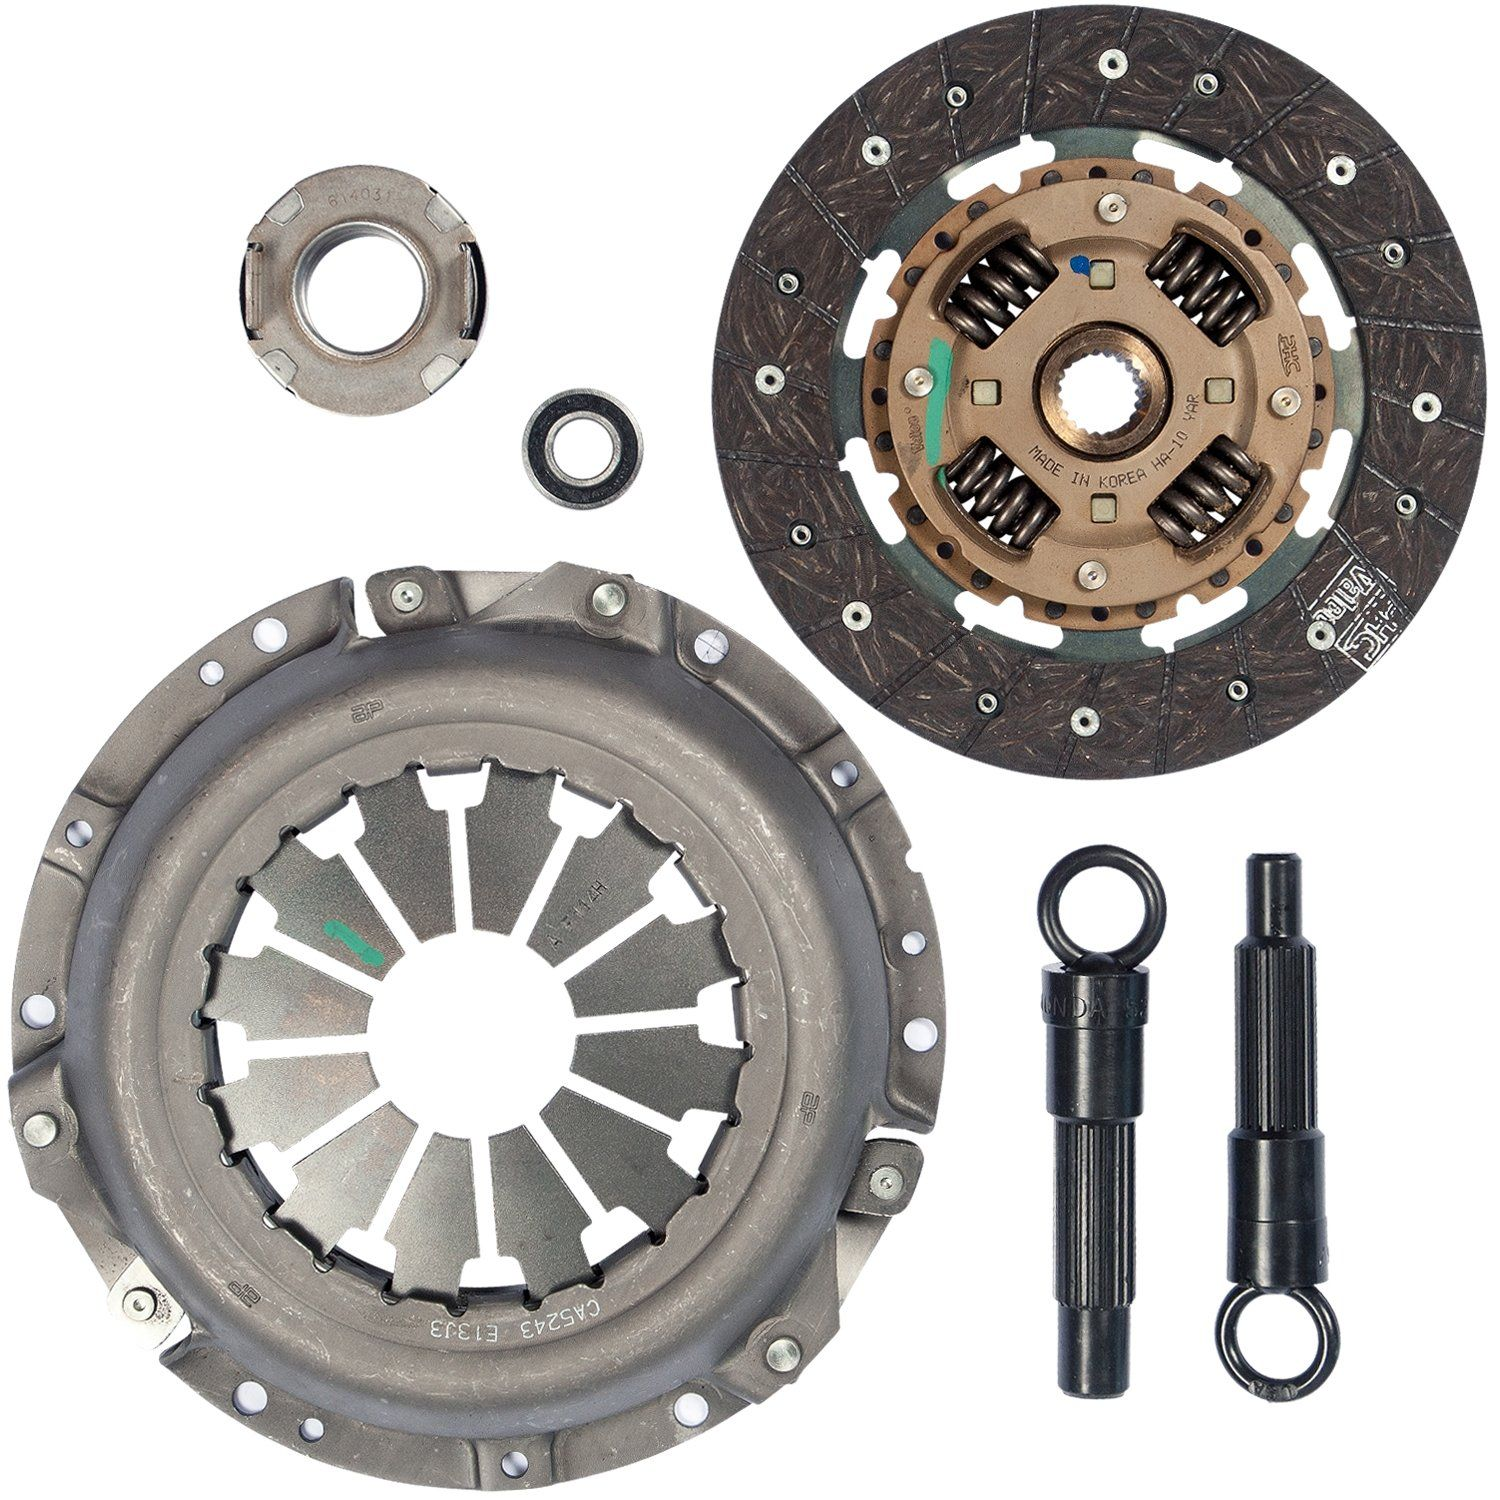 Honda Accord Clutch Kit Replacement Beck Arnley Exedy Genuine Flywheel 1983 4 Cyl 18l Rhino Pac 08 006 Created From Row Number 32565 Spec 0033